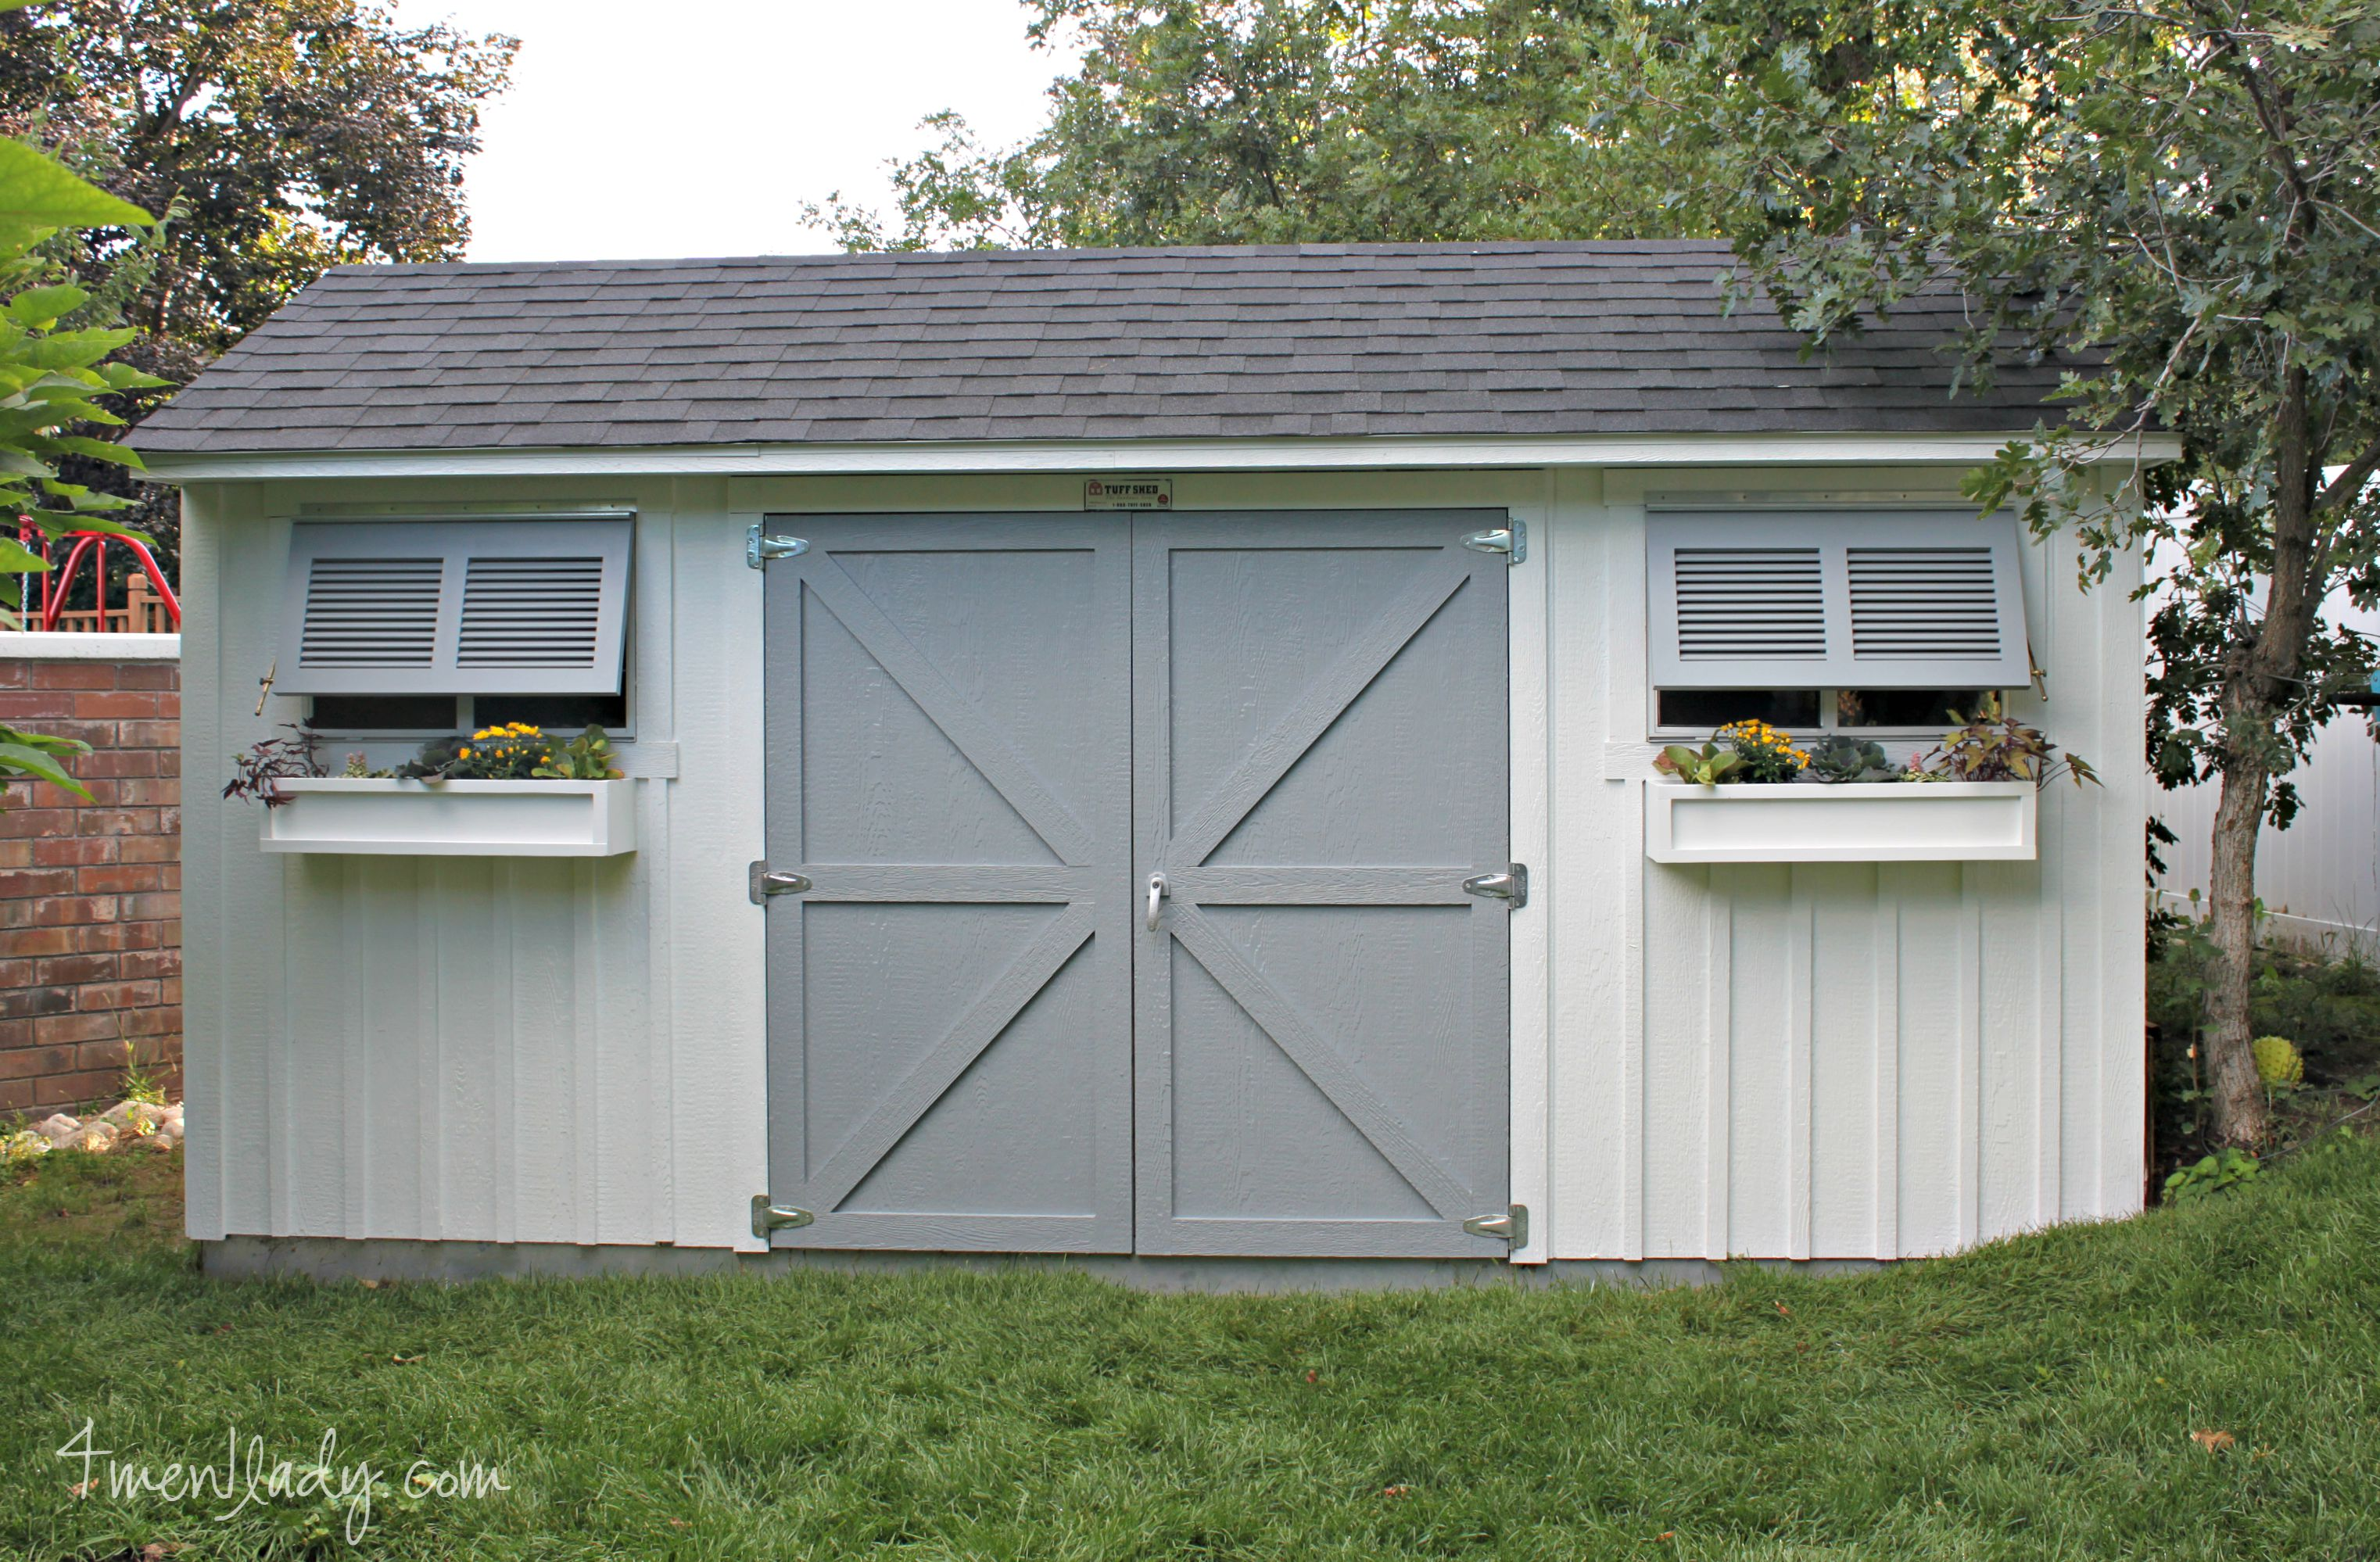 Tuff Shed Facelift + $100. gift card giveaway.